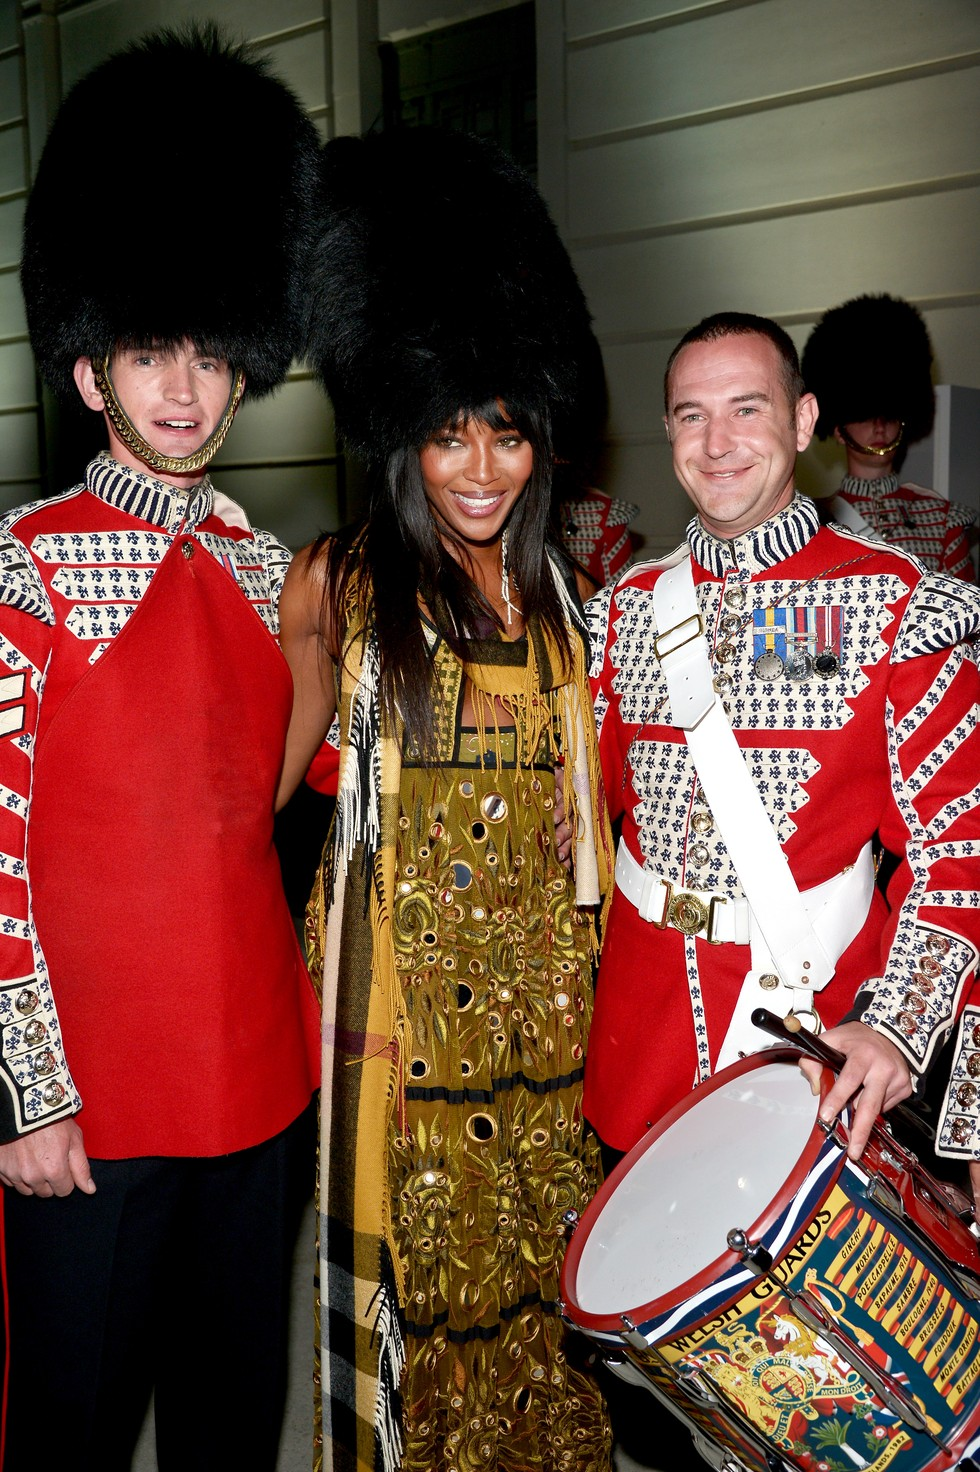 Naomi Campbell, Victoria and David Beckham and More Come Out to Celebrate Burberry in LA